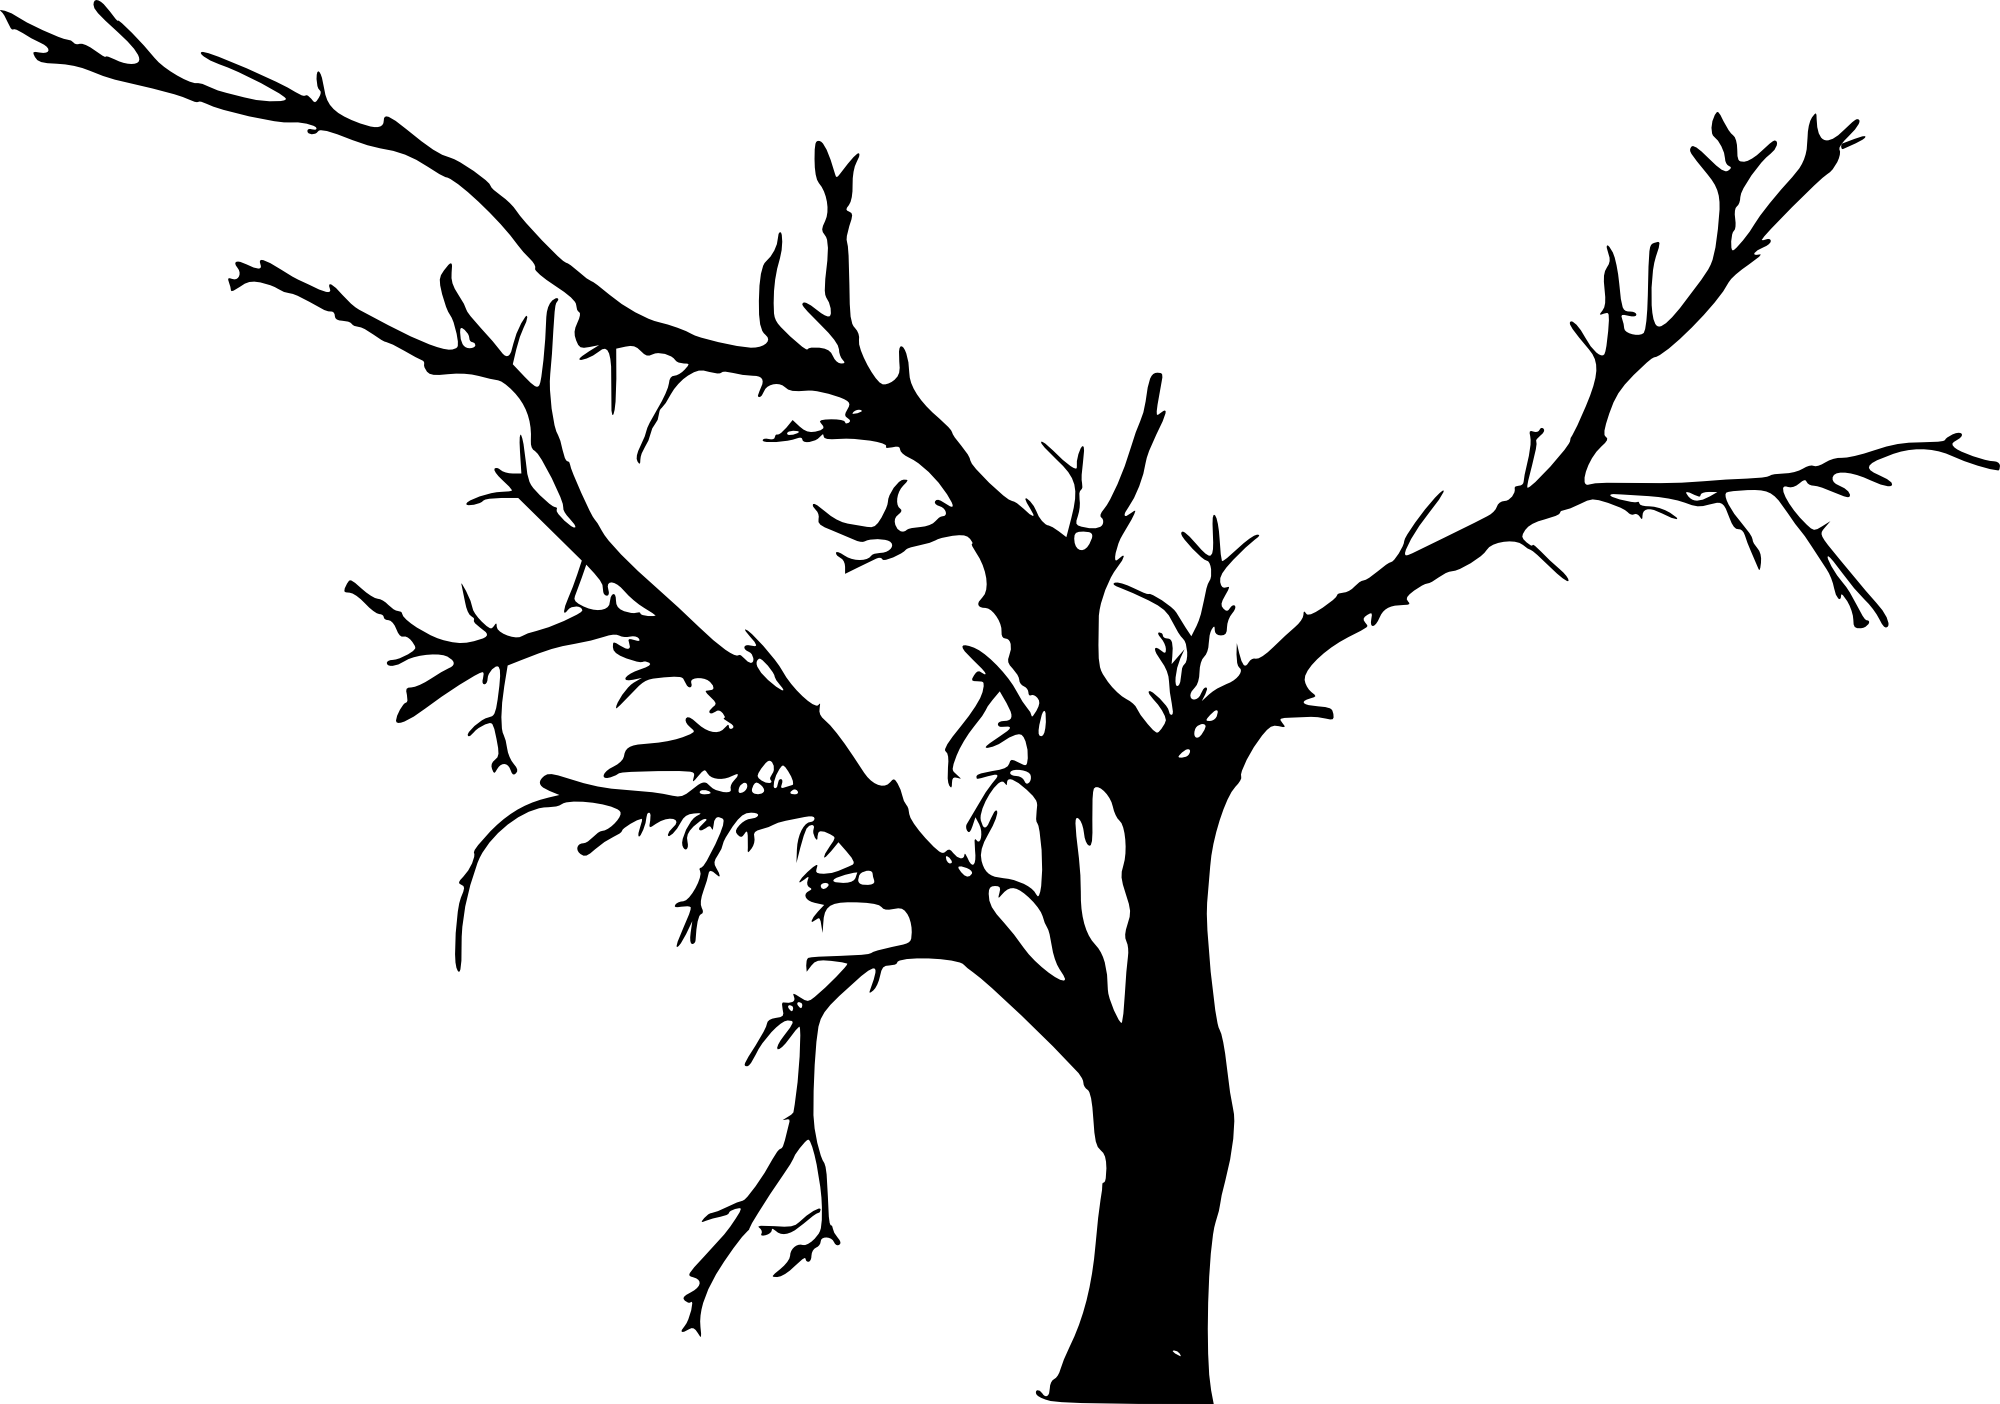 12 Simple Bare Tree Silhouettes Transparent